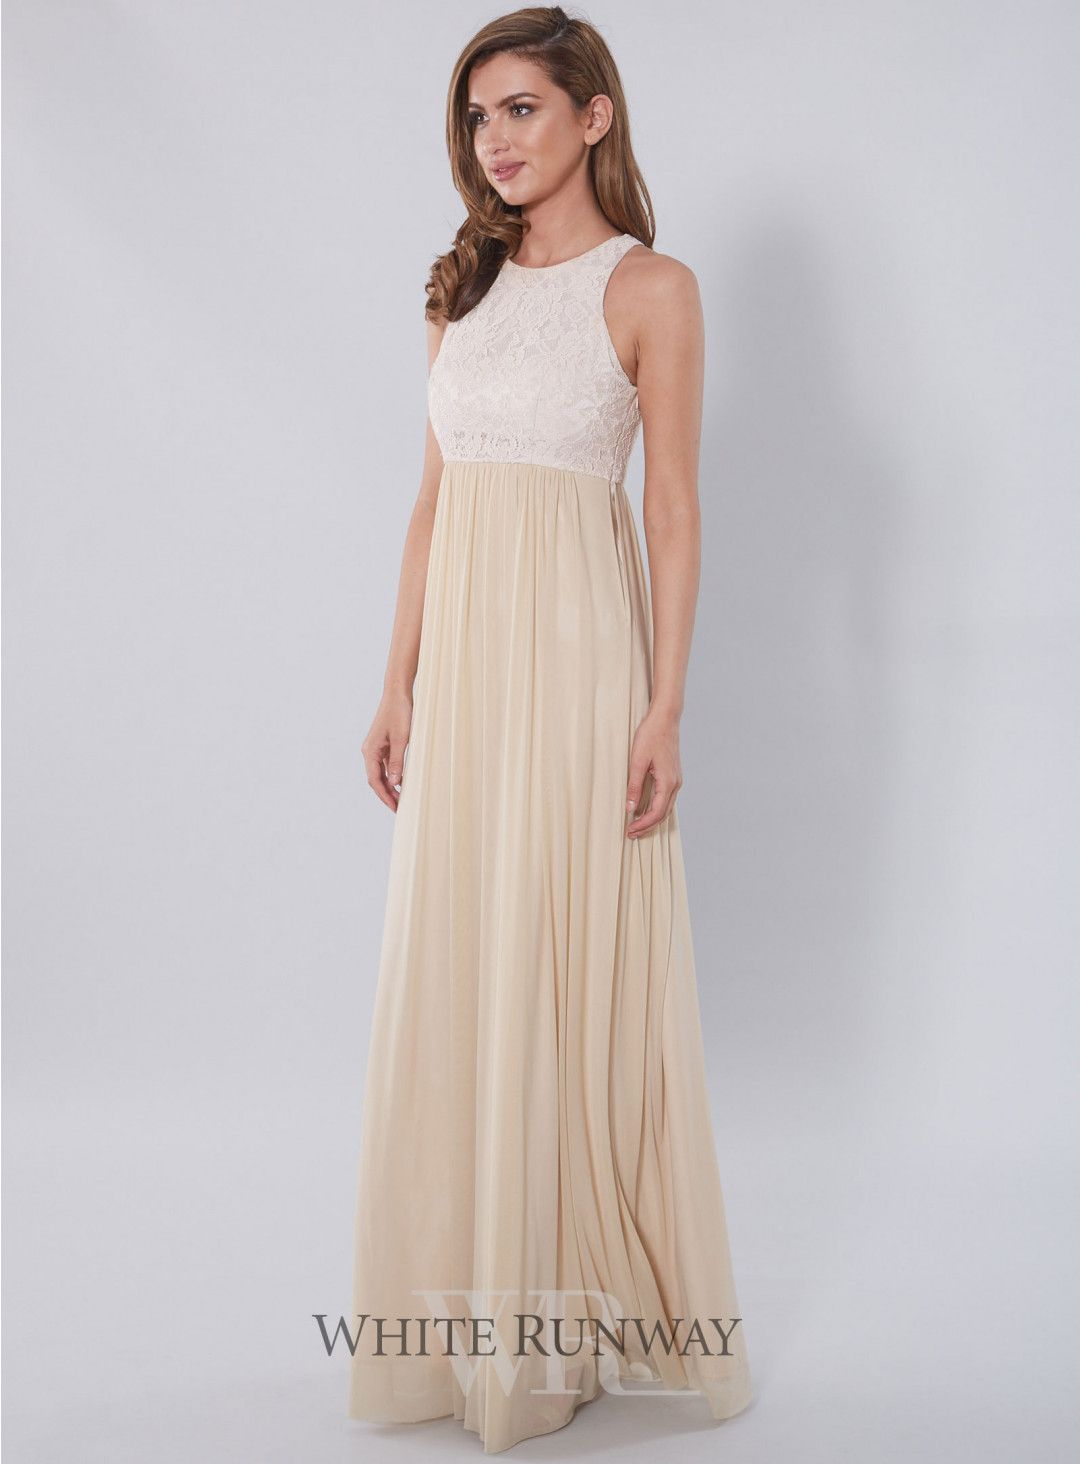 b33f345d11 Aneeta Lace Dress. Beautiful full length bridesmaid dress by Samantha Rose.  A flattering style featuring a stunning lace bodice and stretch chiffon  skirt.